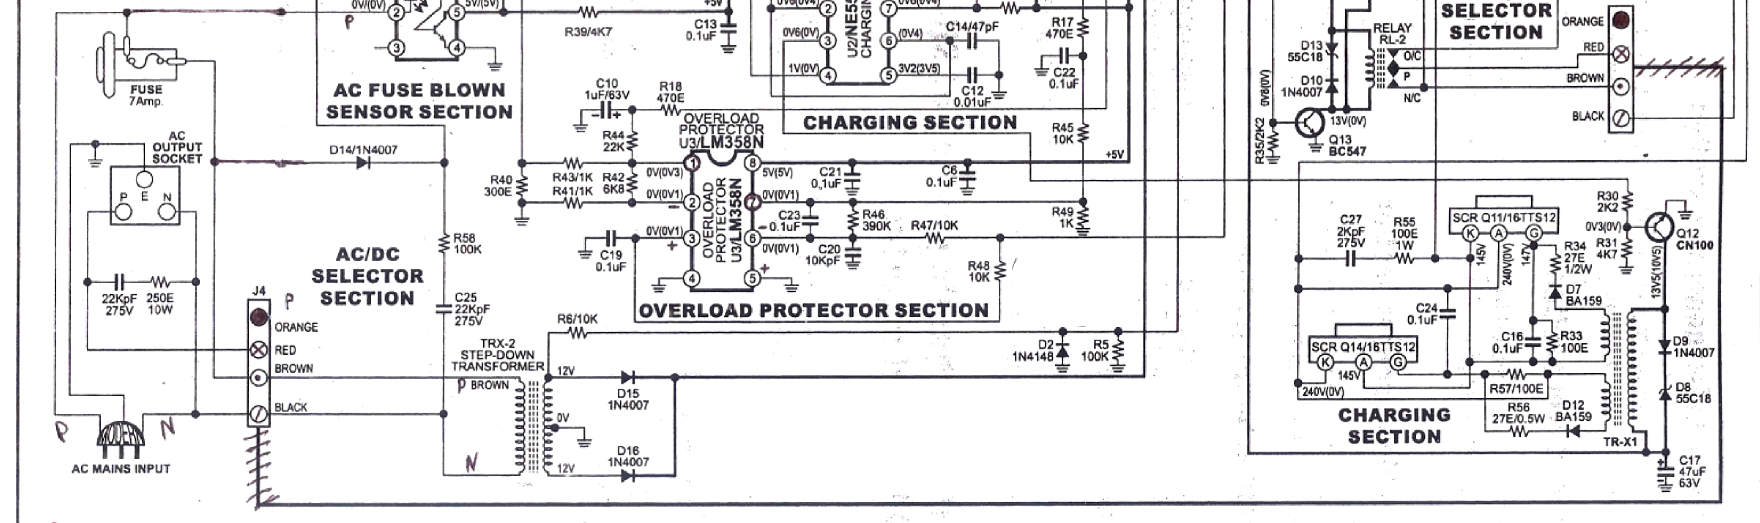 Microtek ups circuit diagram online schematic diagram sine wave inverter circuit using pic16f72 rh makingcircuits com microtek 1kva ups circuit diagram microtek computer ups circuit diagram asfbconference2016 Images